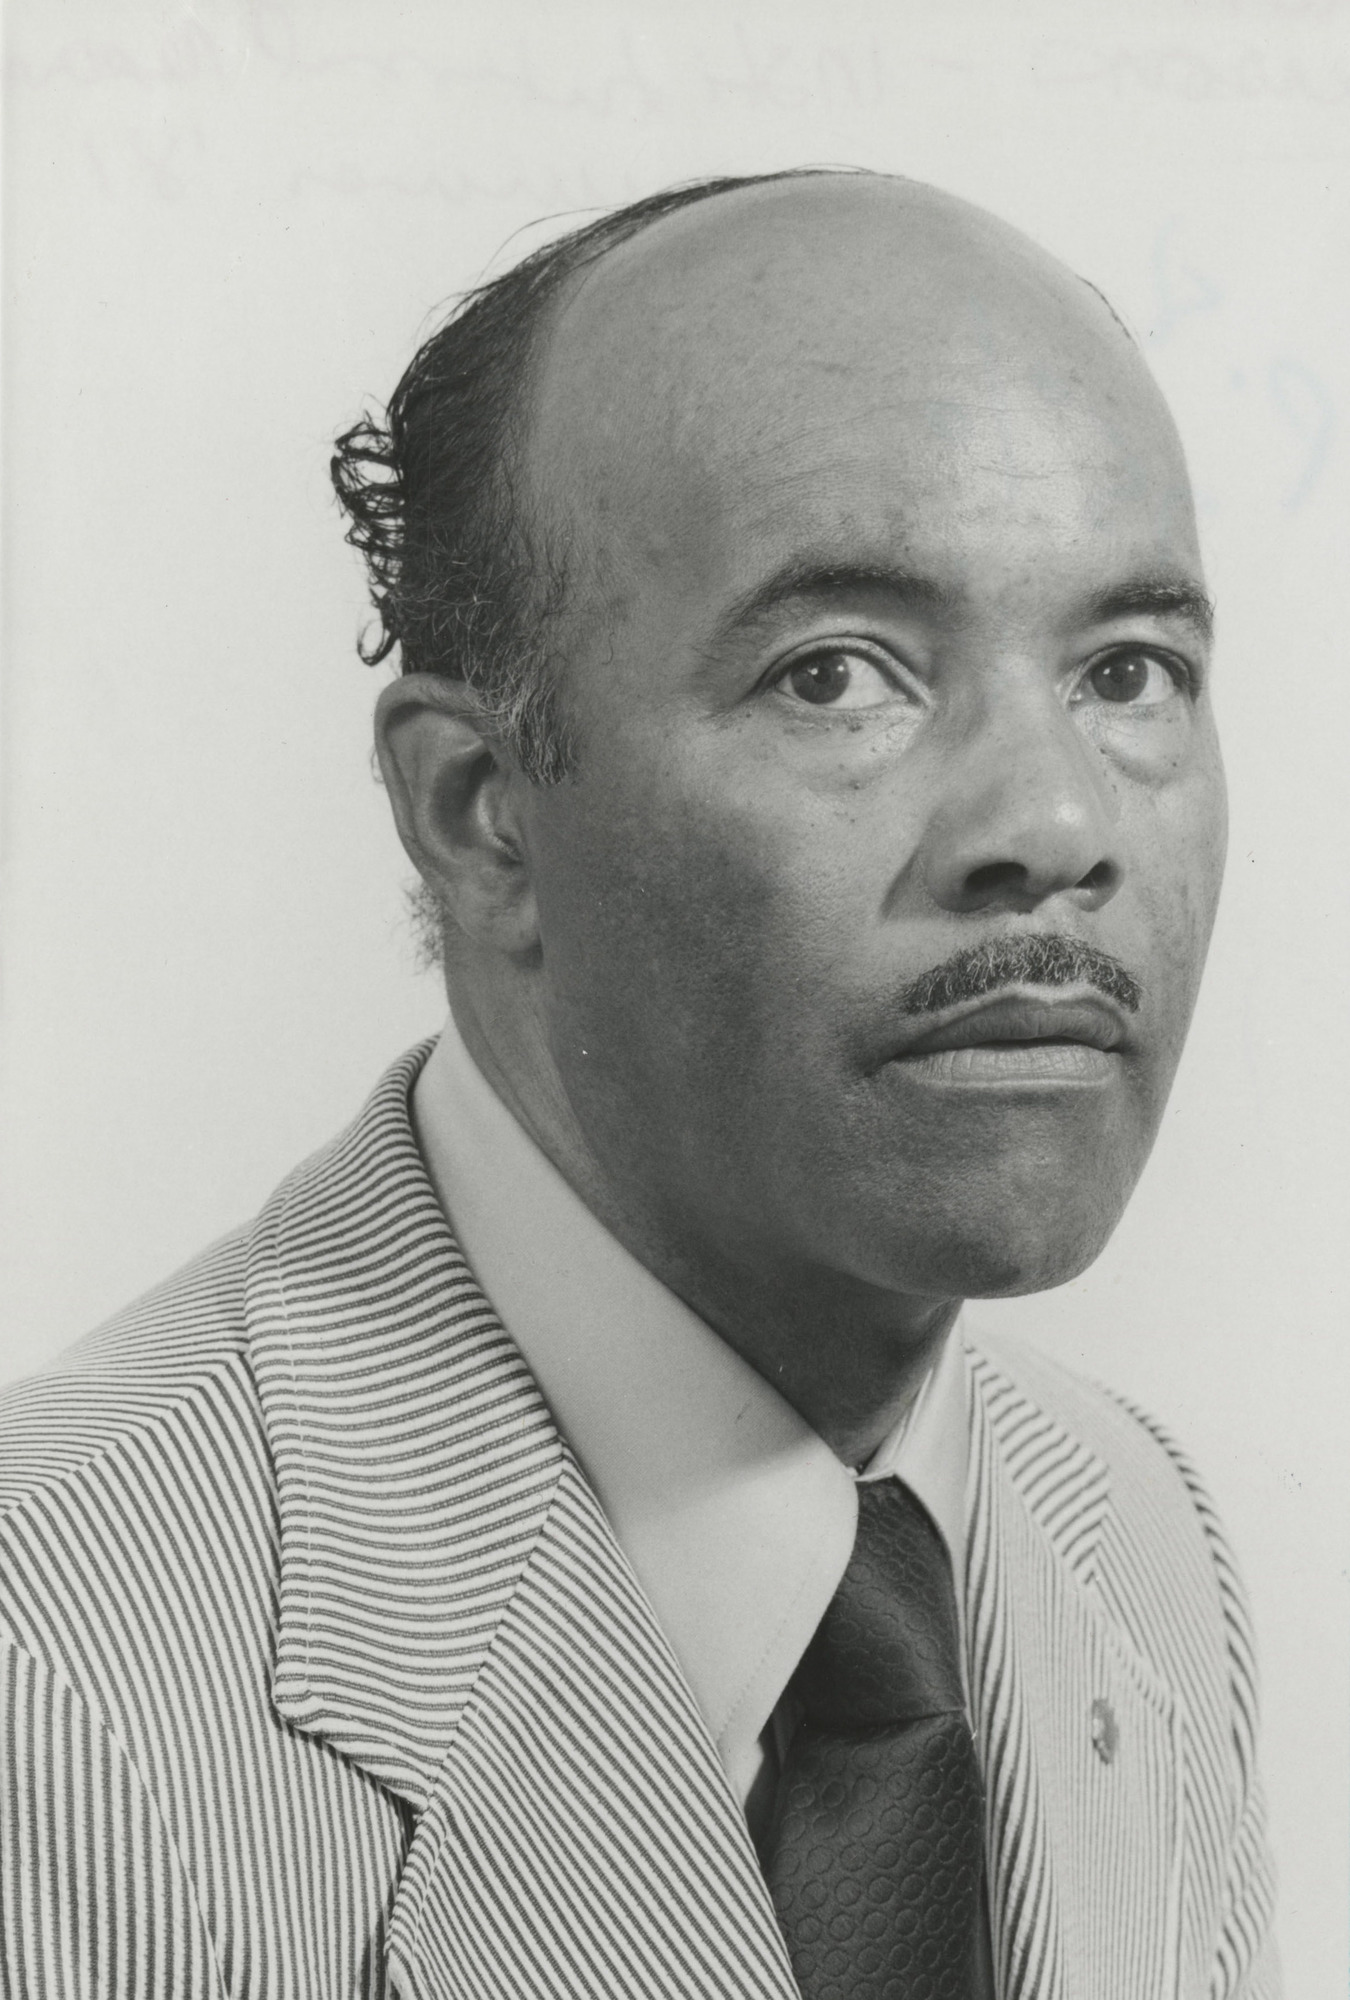 http://spec.lib.vt.edu/pickup/Omeka_upload/Johnson_Overton_1981.jpg